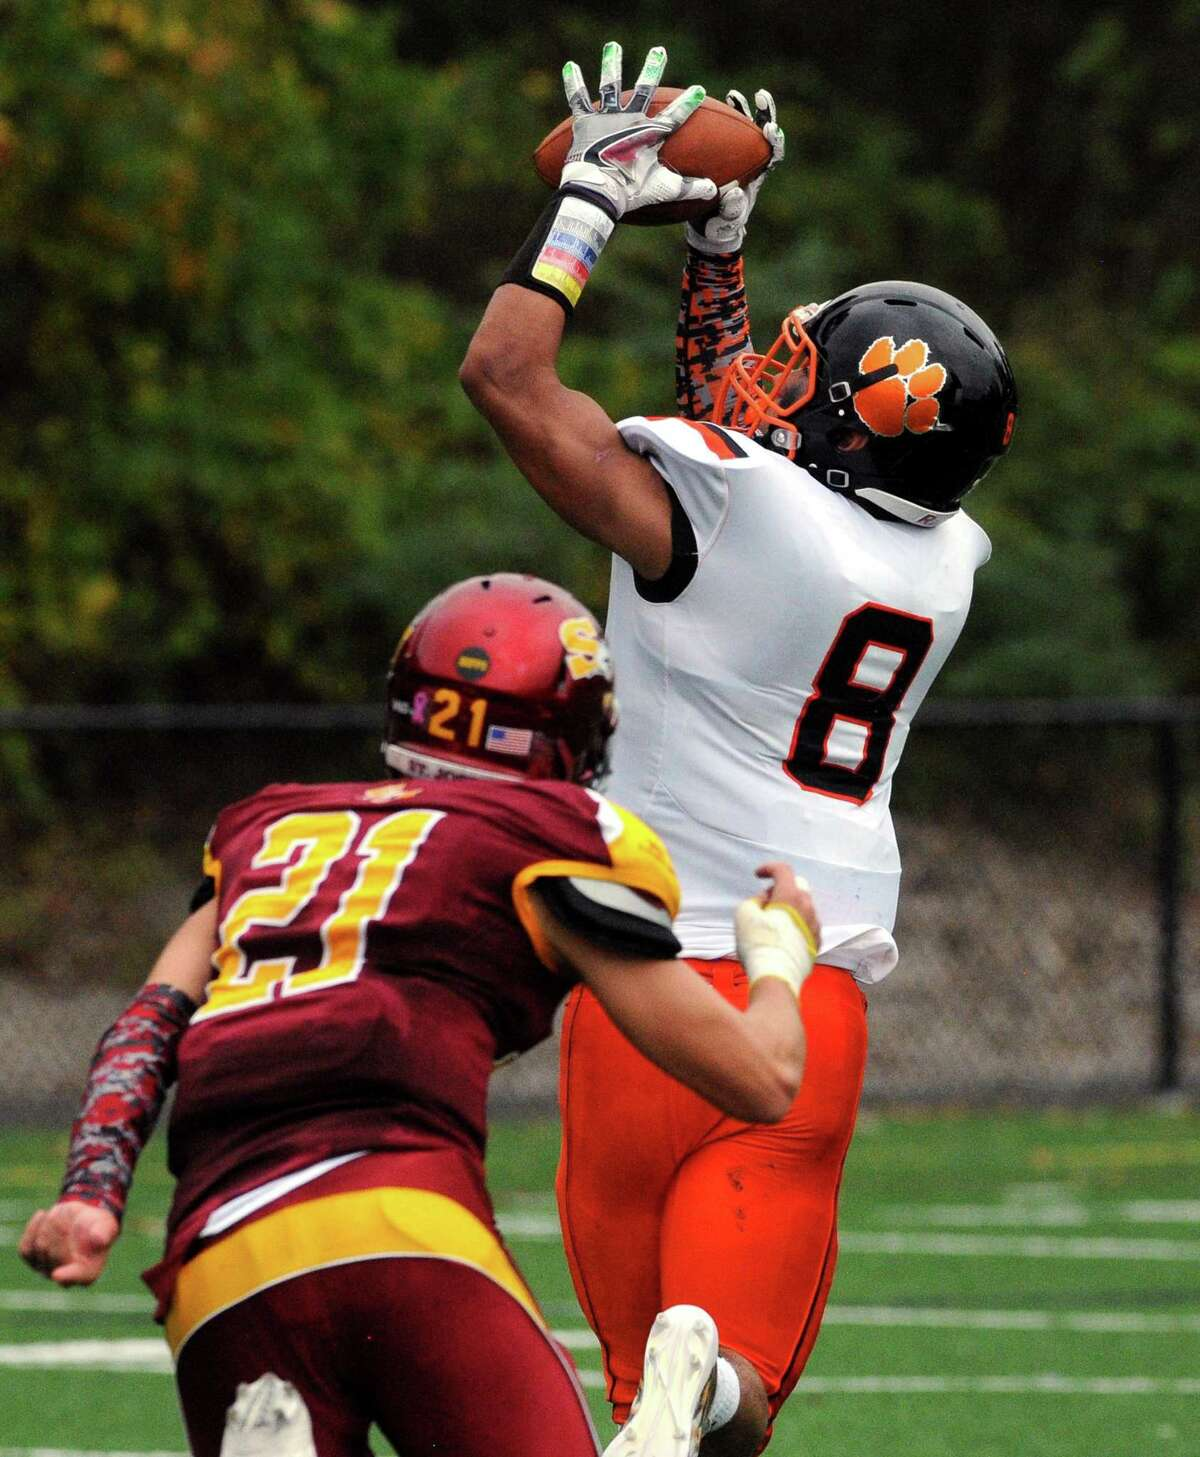 Ridgefield's Jackson Mitchell completes a pass which he took to the end zone to score a touchdown during football action against St. Joseph in Trumbull, Conn. on Saturday Oct. 14, 2017.